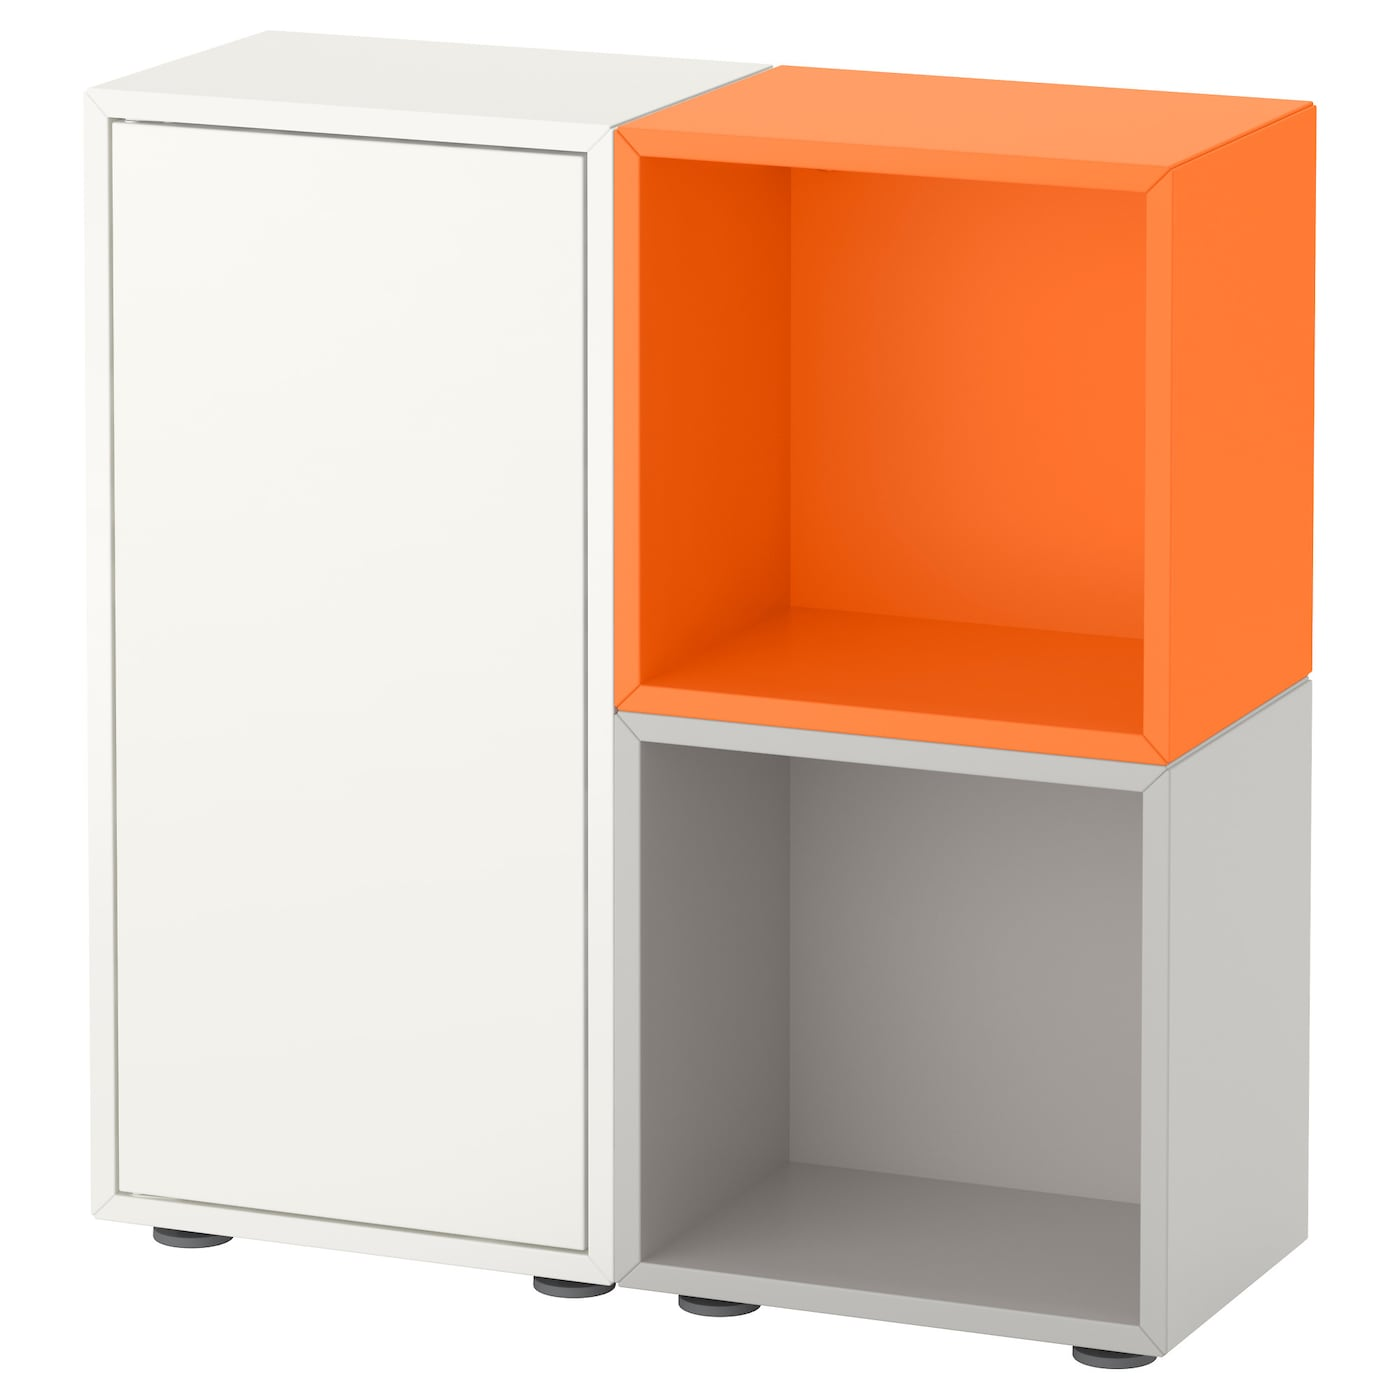 eket cabinet combination with feet white orange light grey 70 x 25 x 72 cm ikea. Black Bedroom Furniture Sets. Home Design Ideas